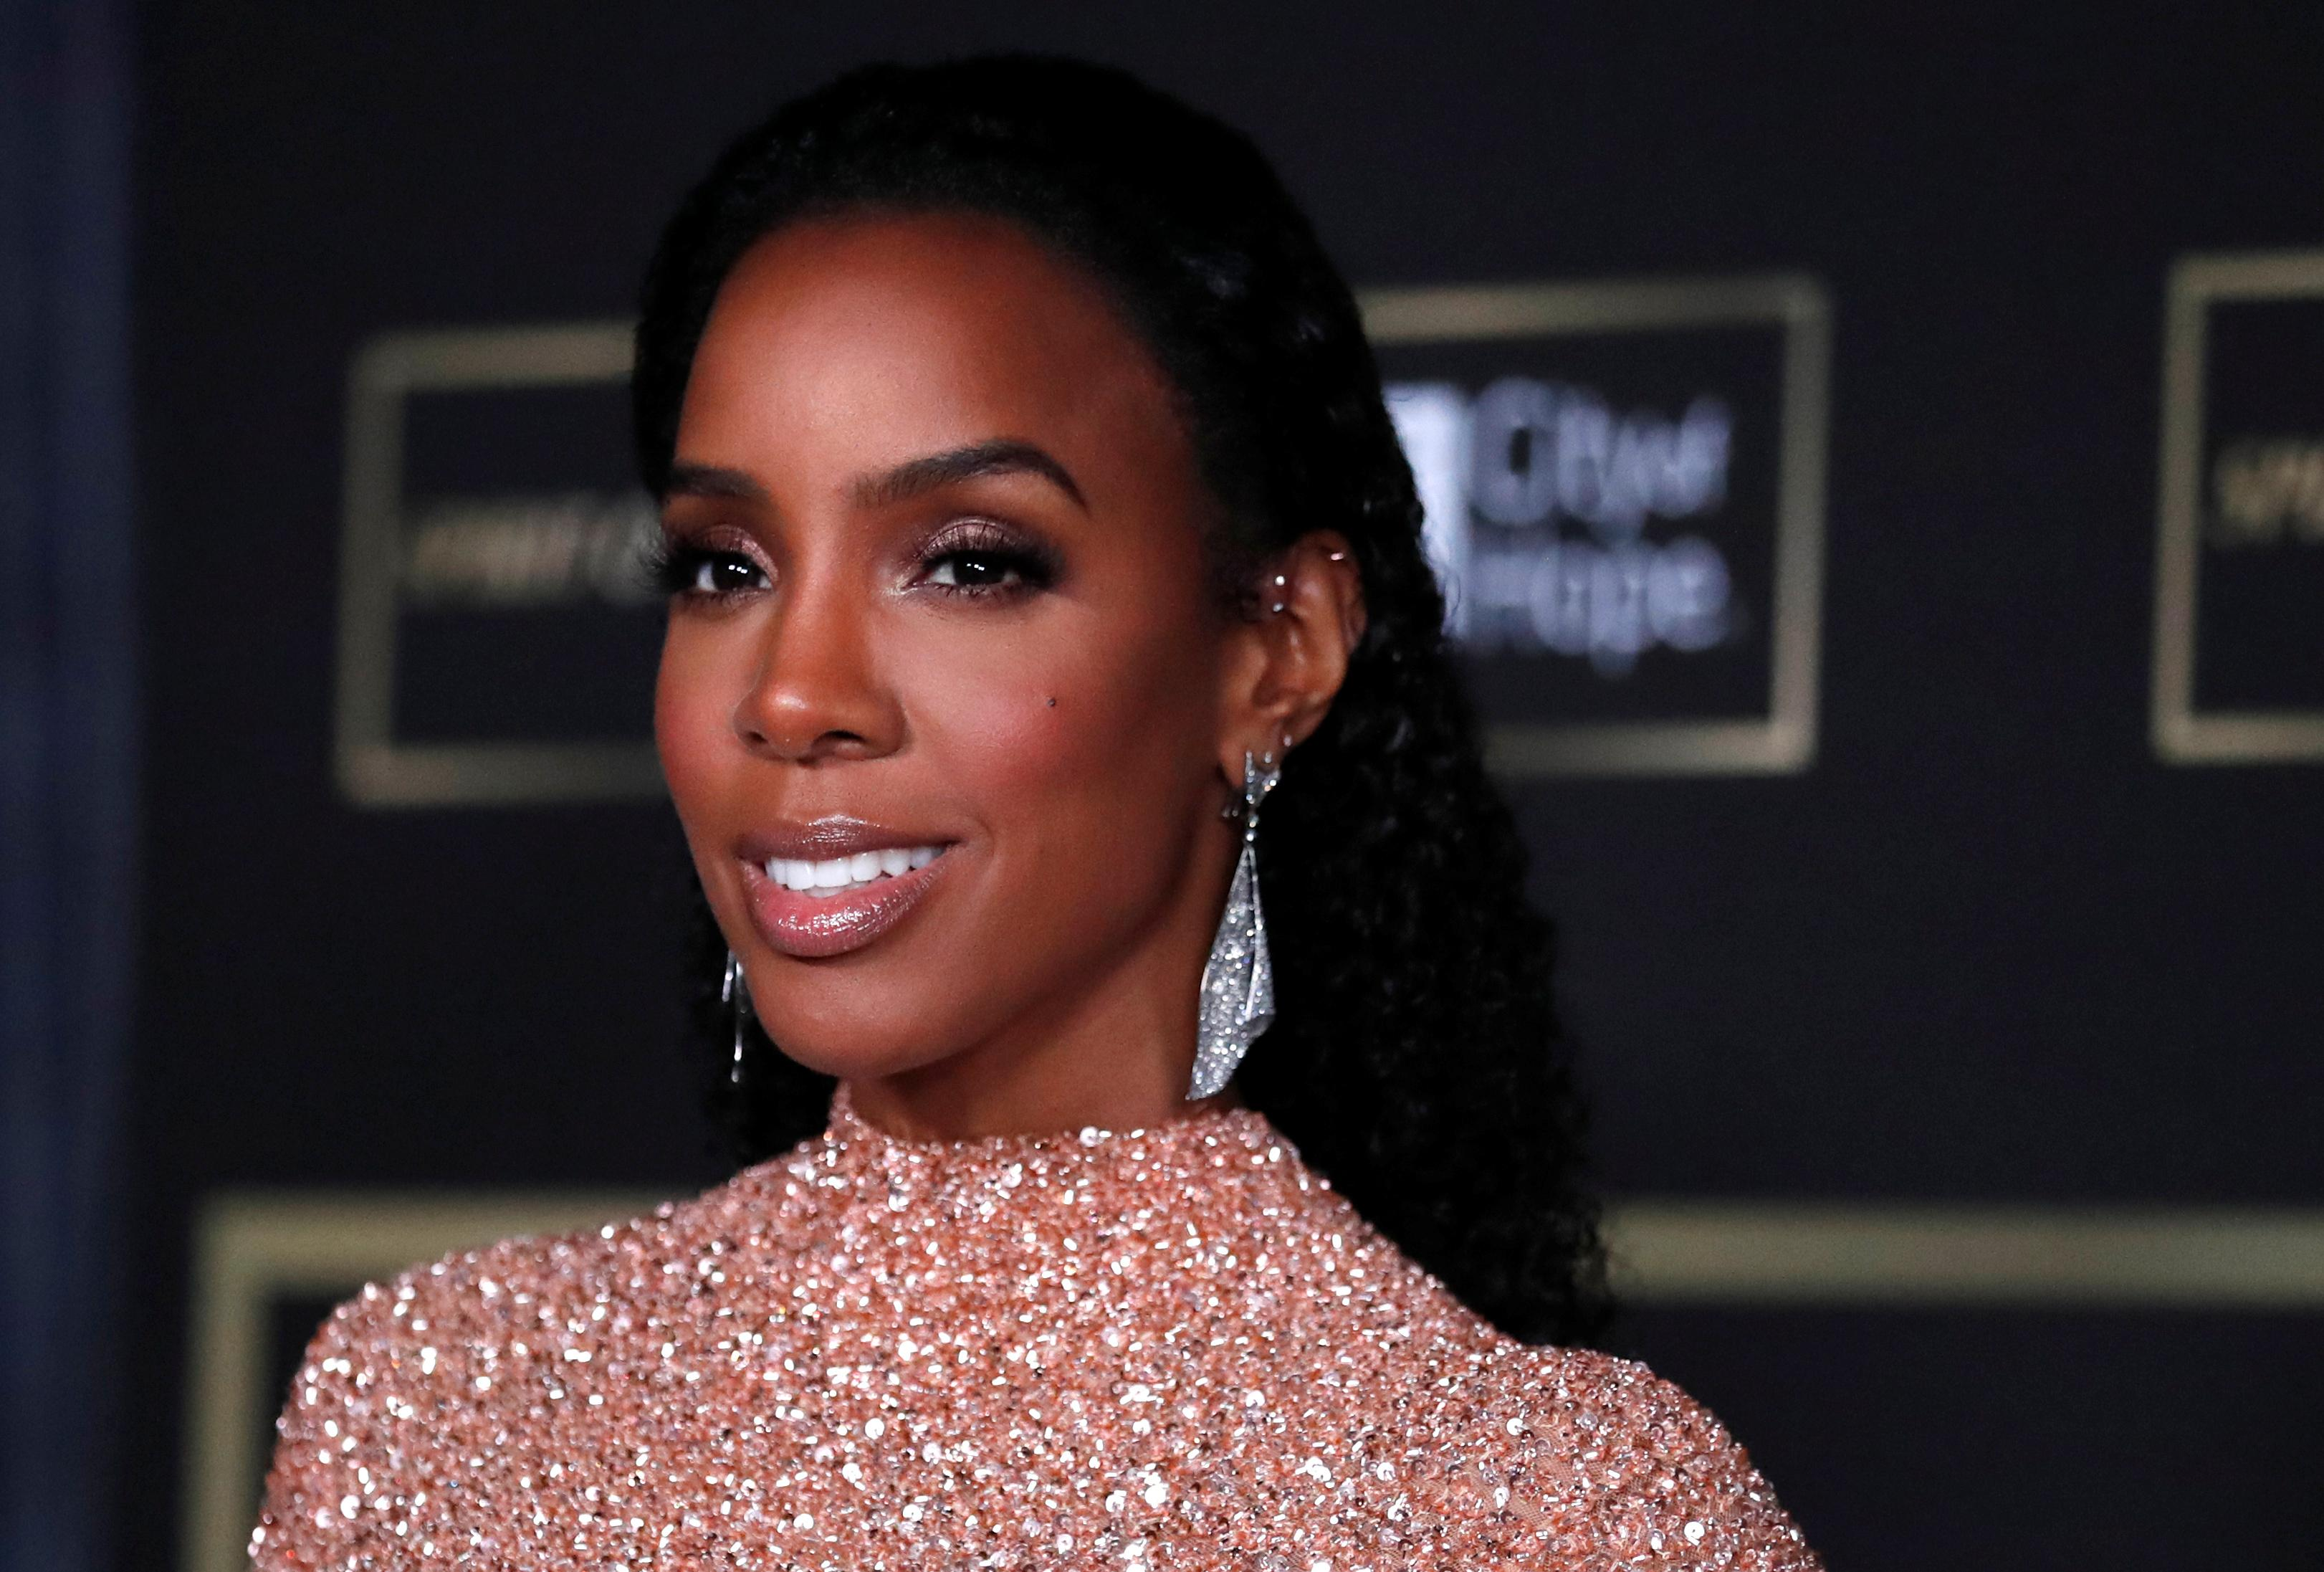 Kelly Rowland Says 'I Am So Grateful God Never Canceled Me' as She Criticizes 'Judgmental' Cancel Culture